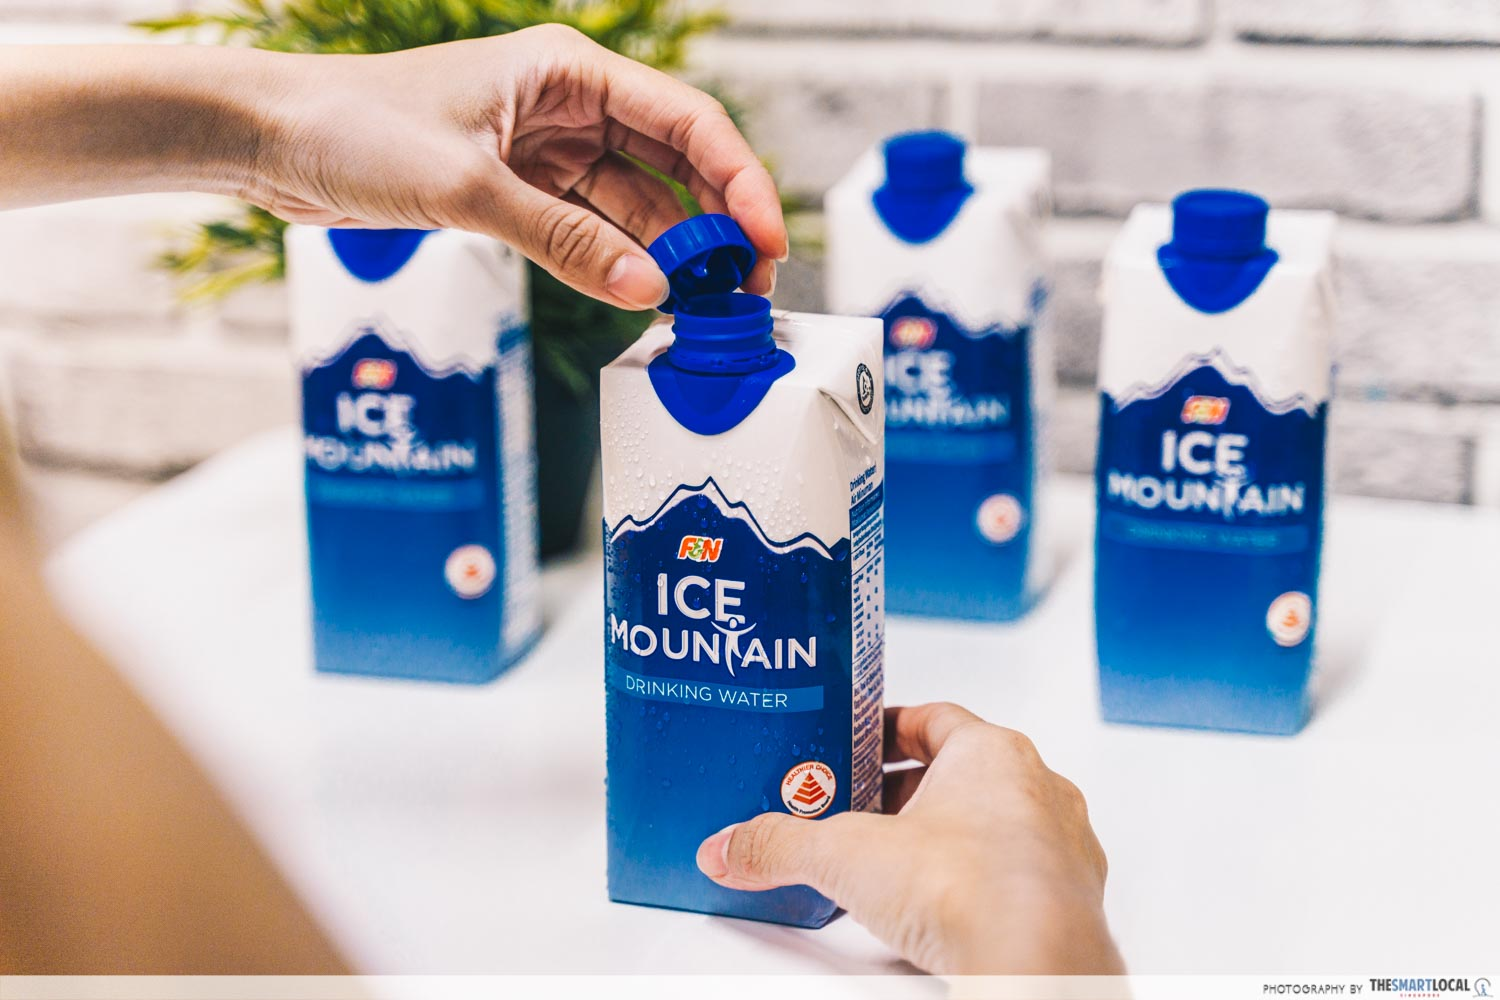 Ice Mountain recyclable packaging